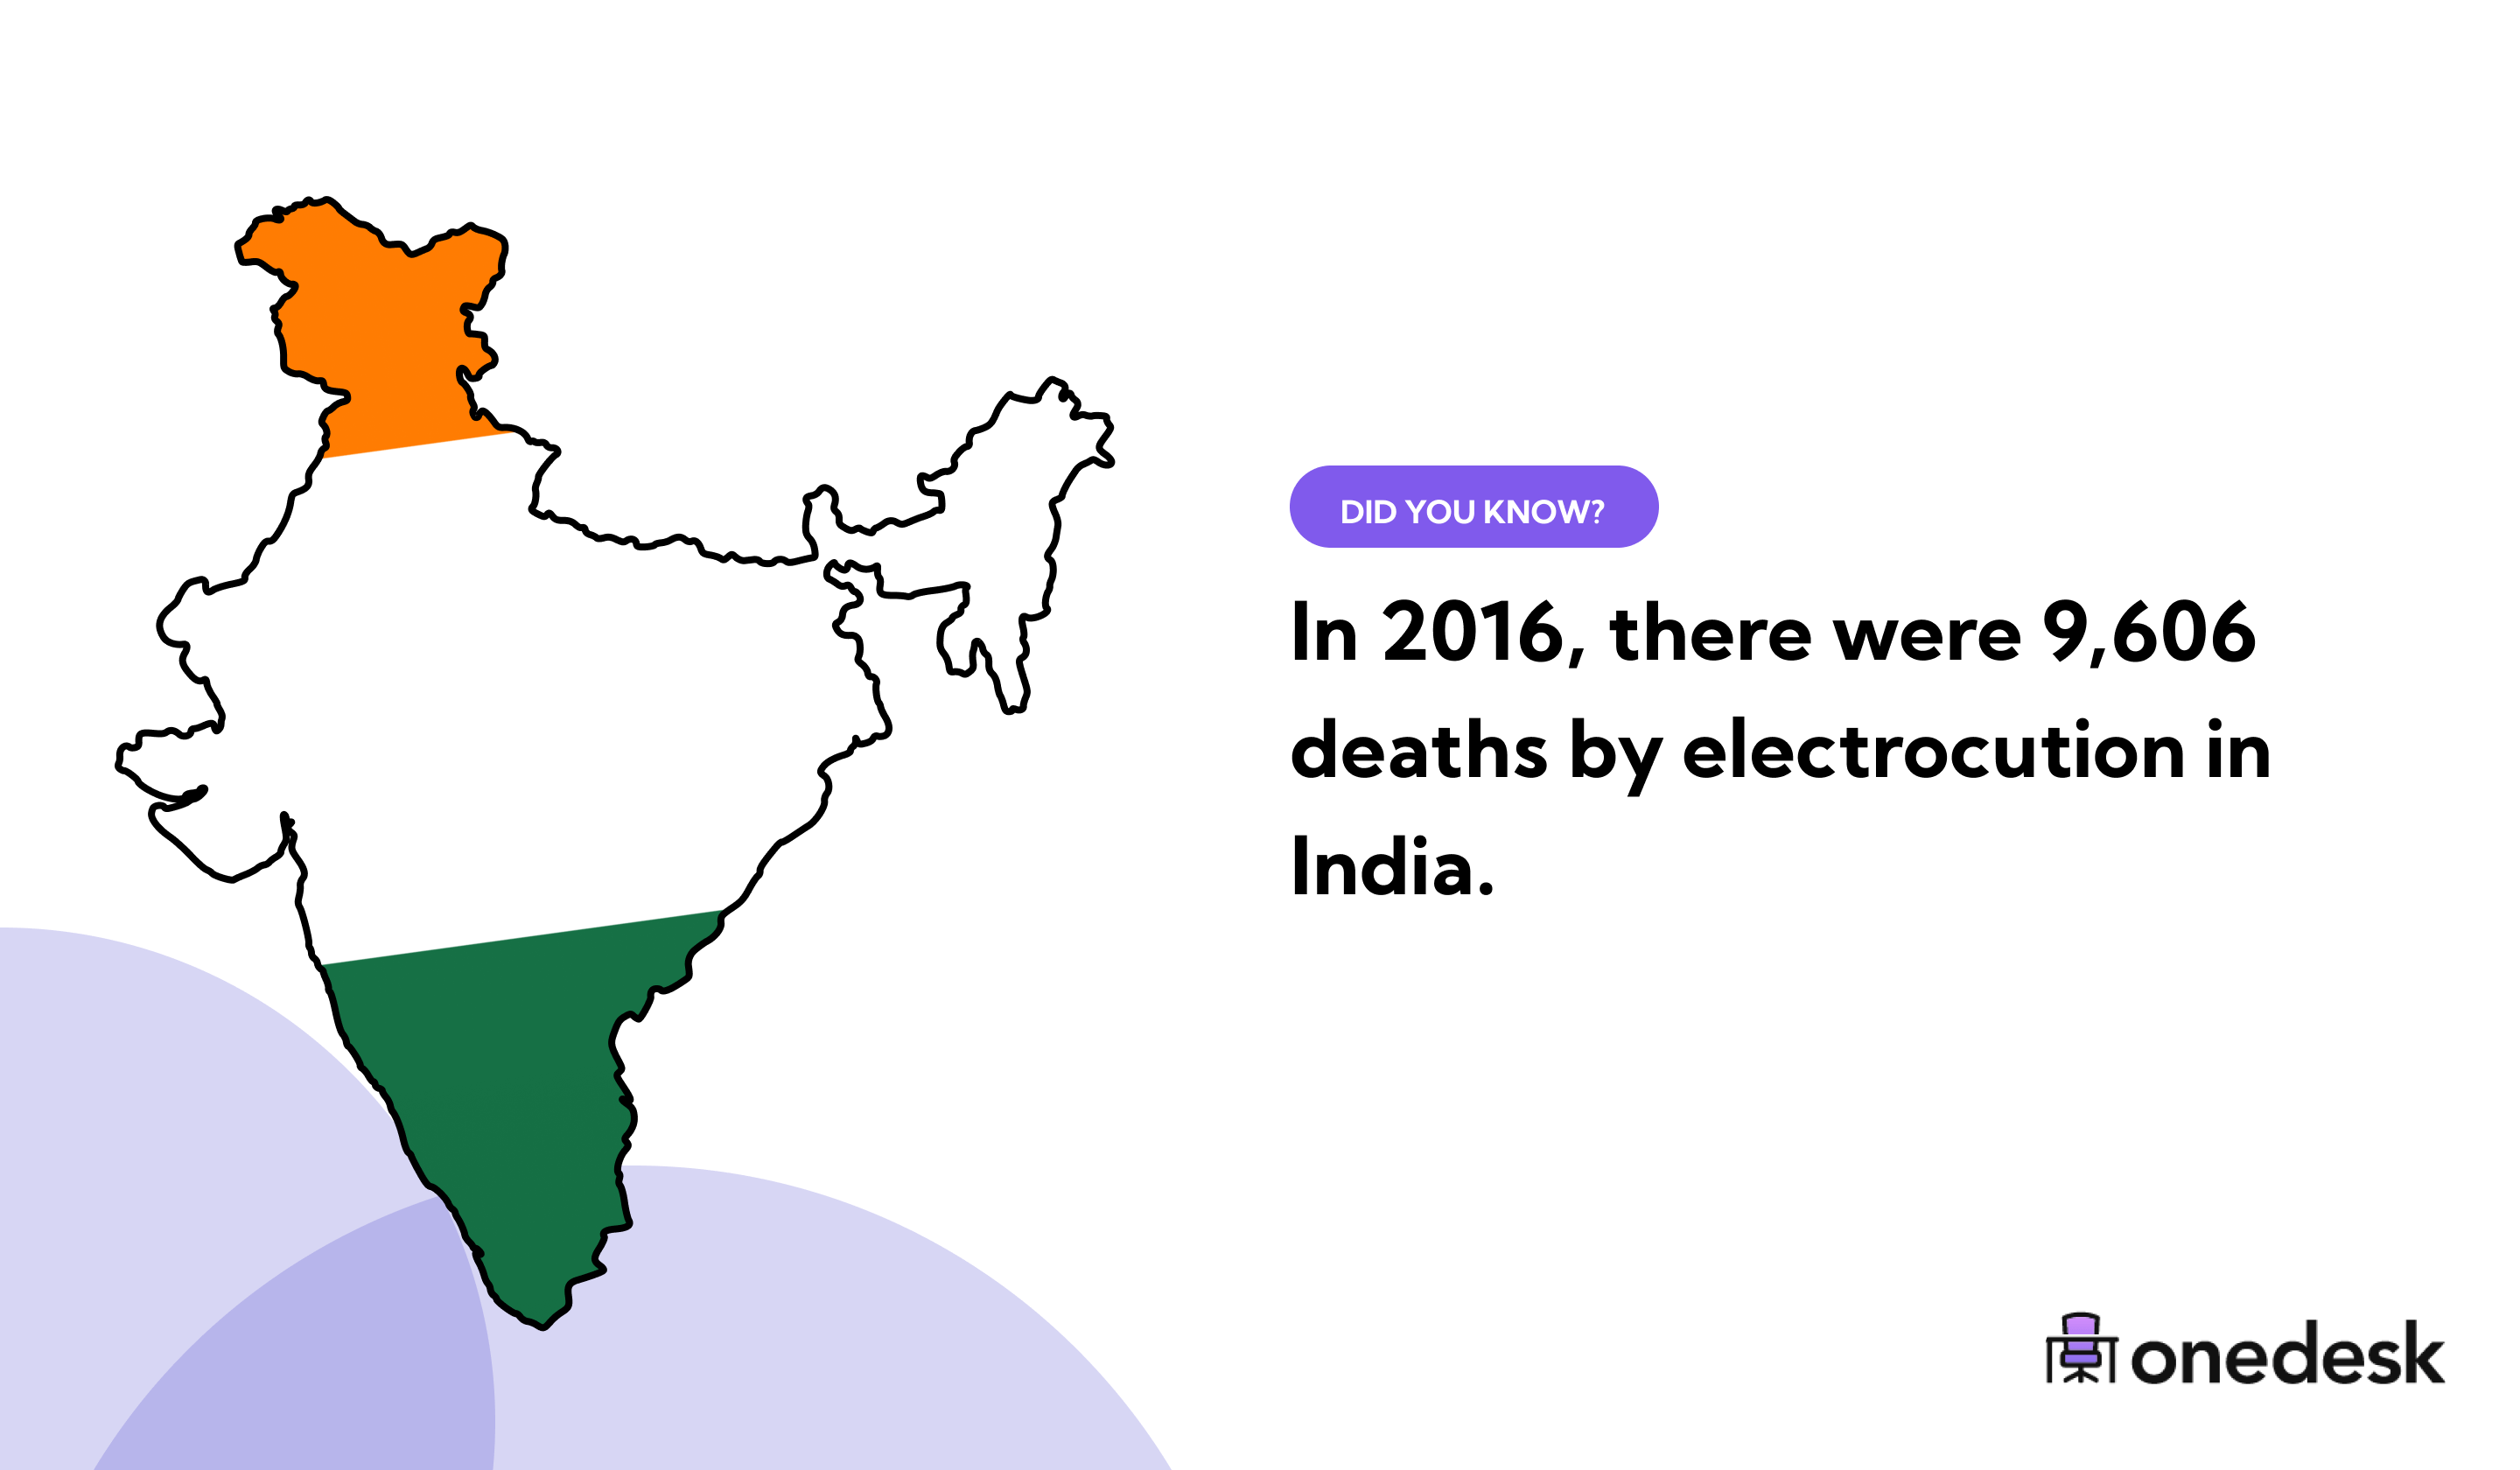 deaths from electrocution in India